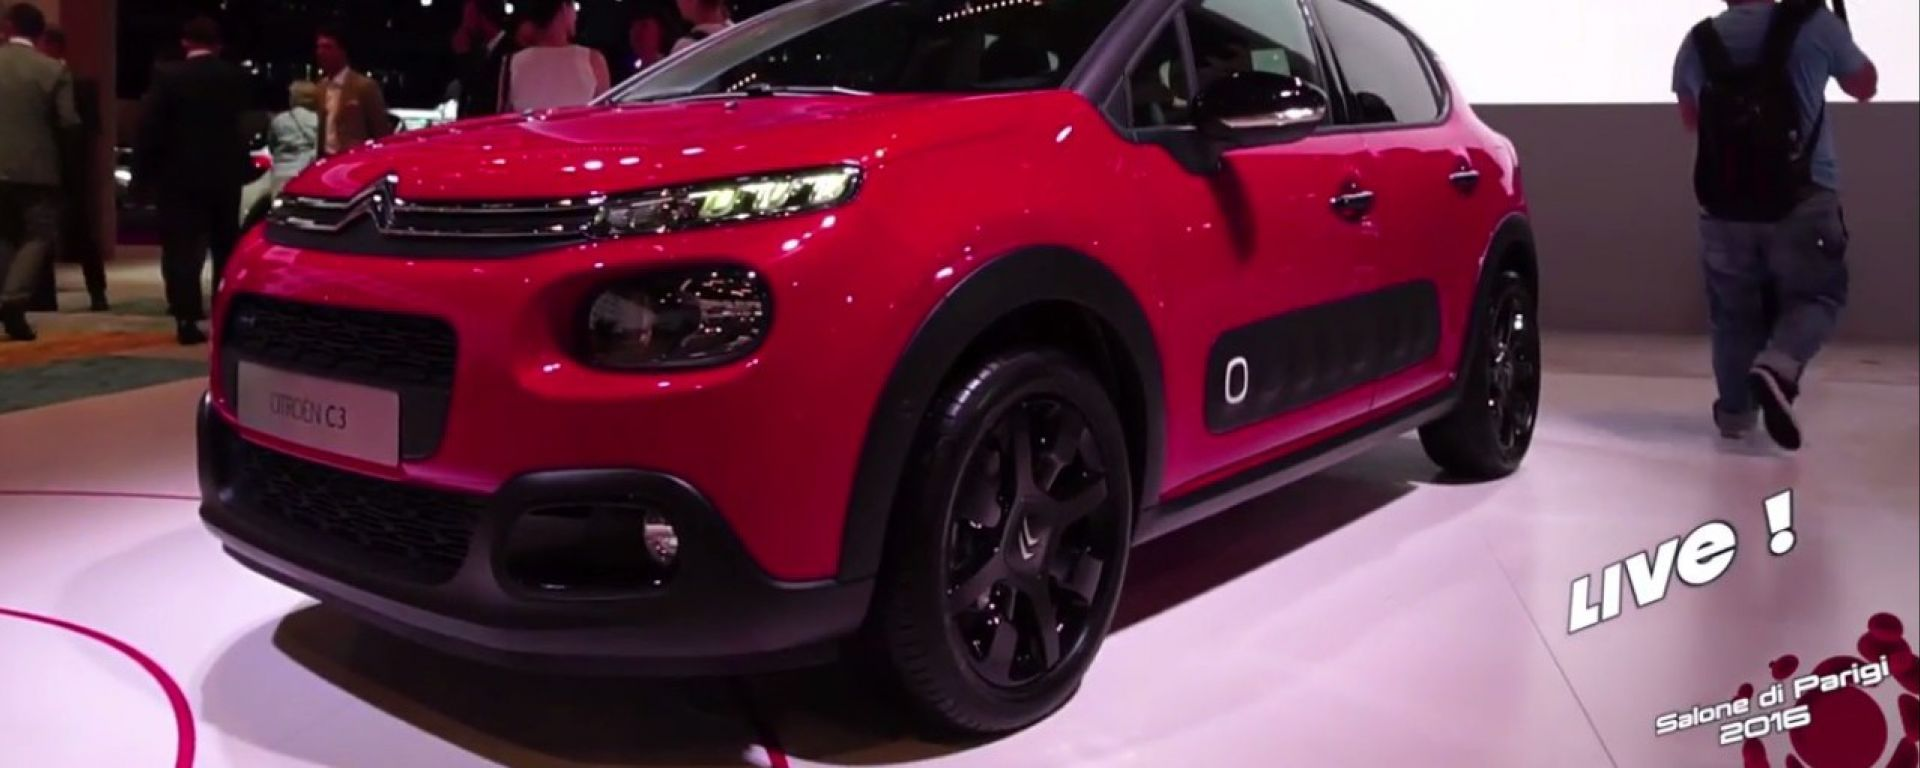 Live Parigi 2016: Citroen C3, CXperience Concept e C3 WRC in video